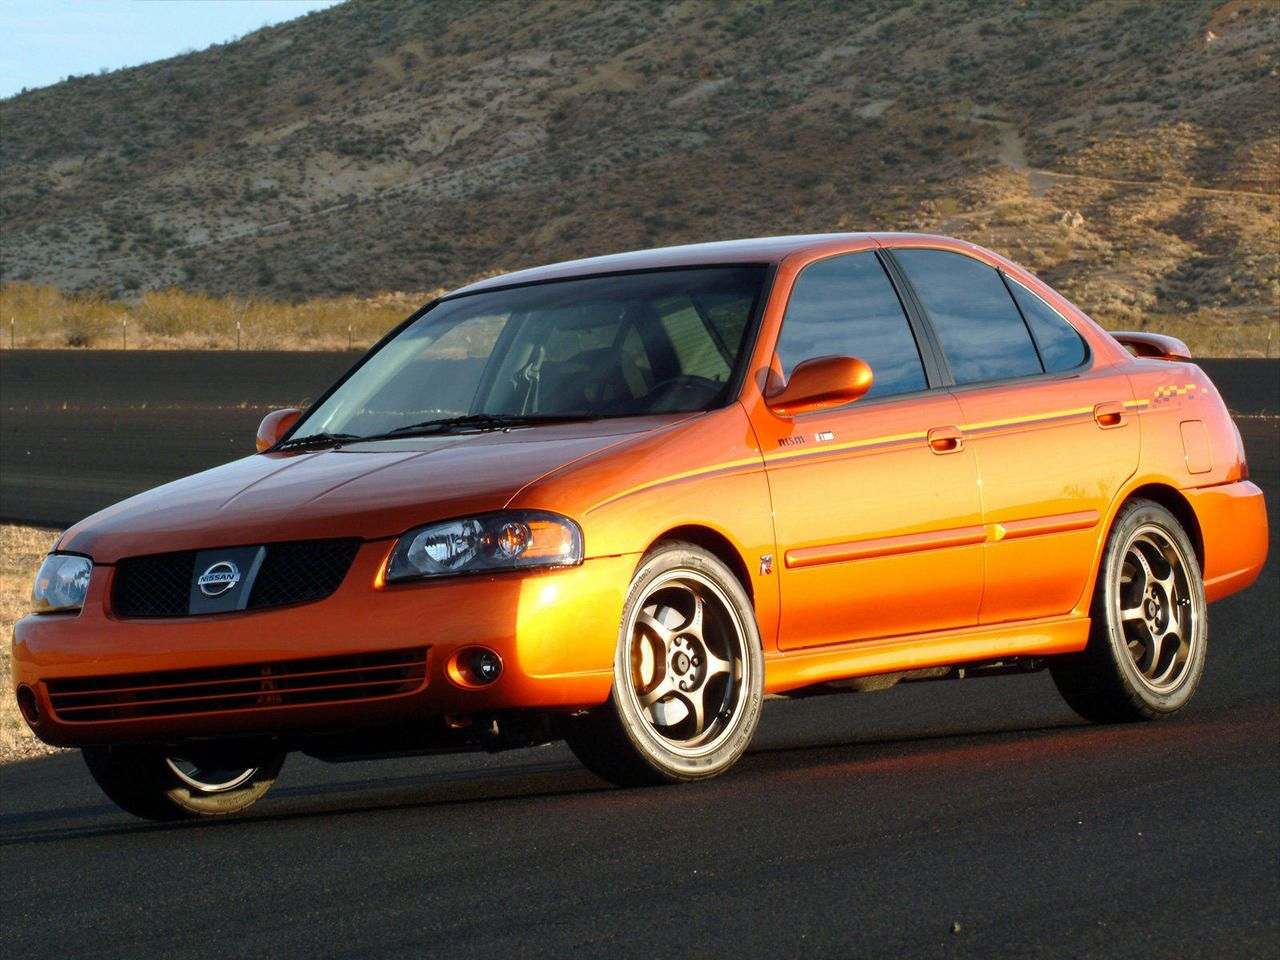 55 best nissan sentra images on pinterest html cars and the ojays southwestengines 2004 nismo nissan sentra vanachro Gallery